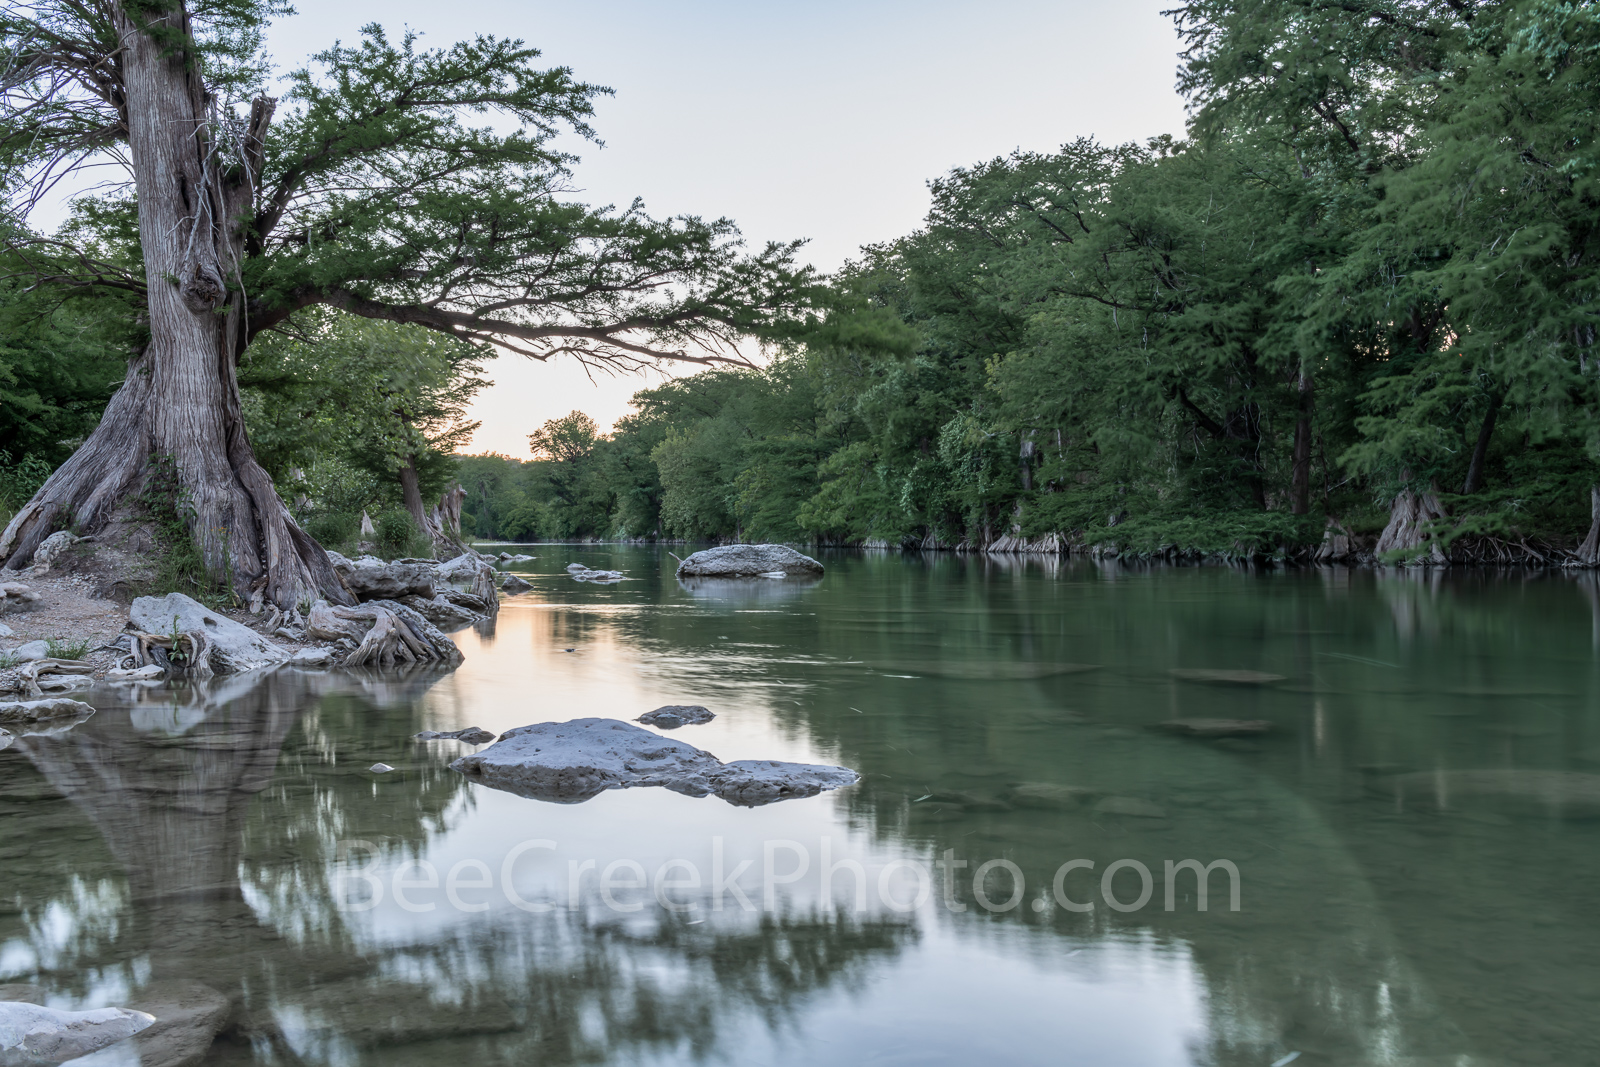 Guadalupe river, hill county, Guadalupe State Park, cypress trees, rocks, flood, river rocks, water, river, texas hill country, photo